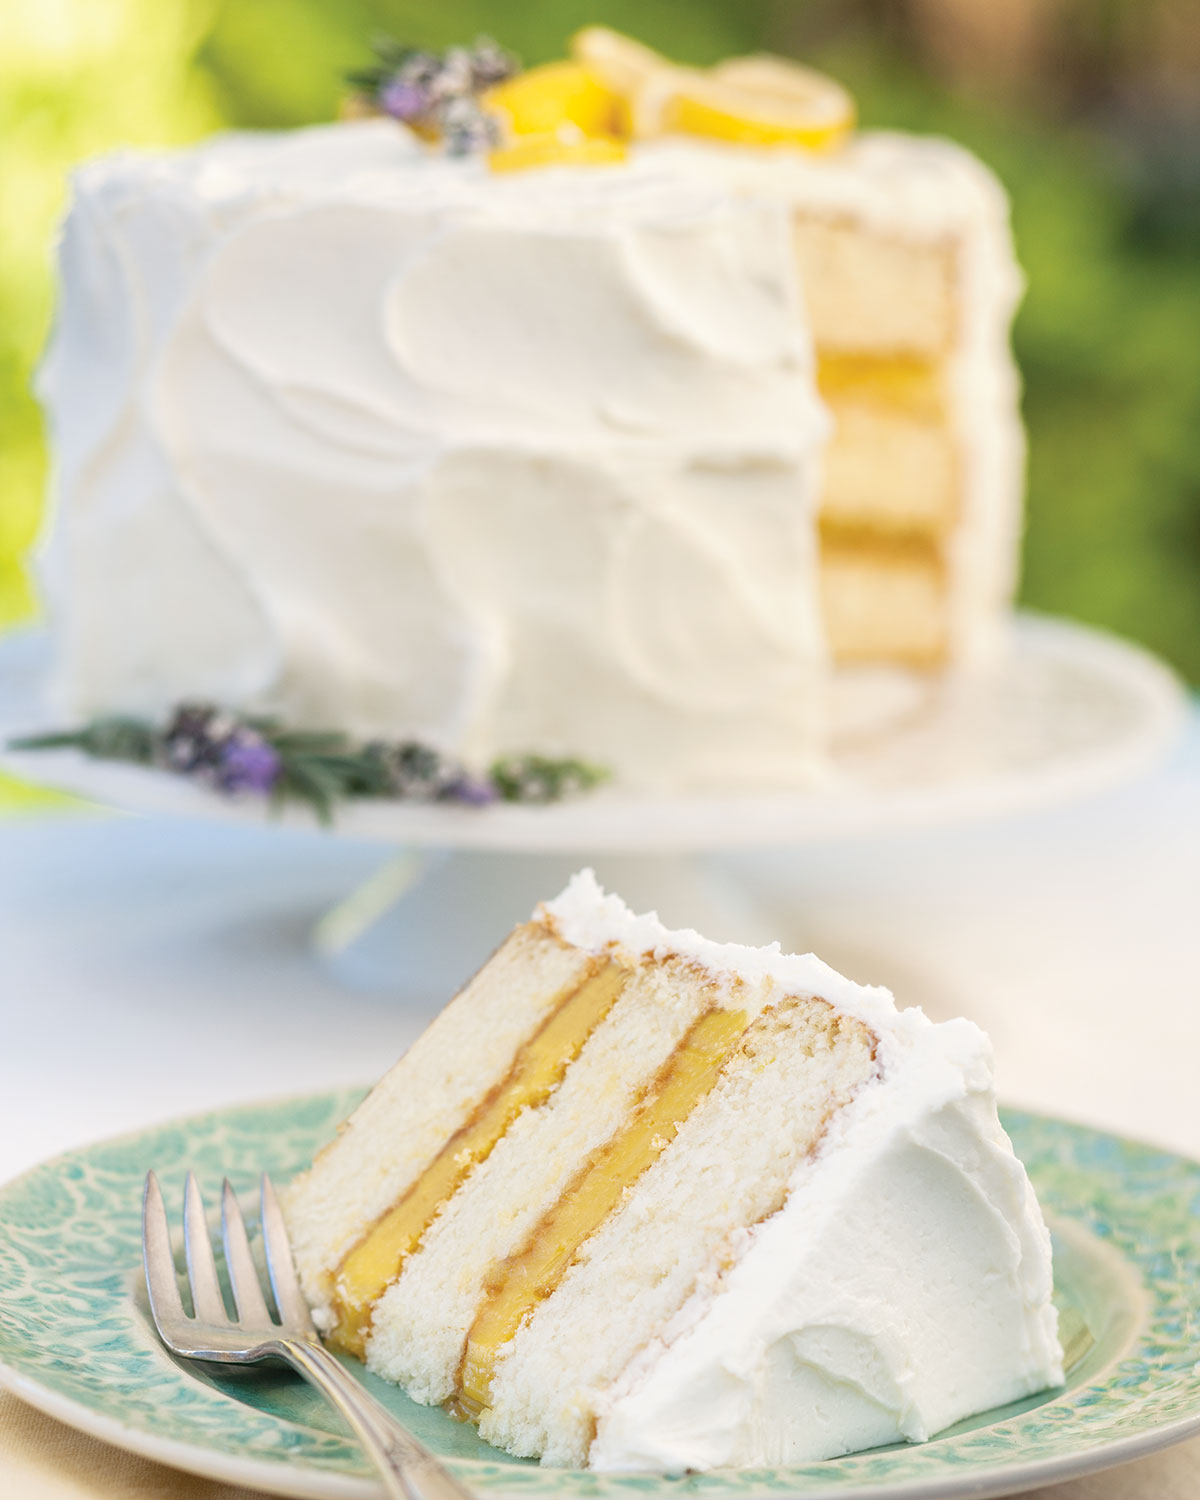 Dreamy Lemon Cake with Limoncello Frosting - Southern Lady Magazine